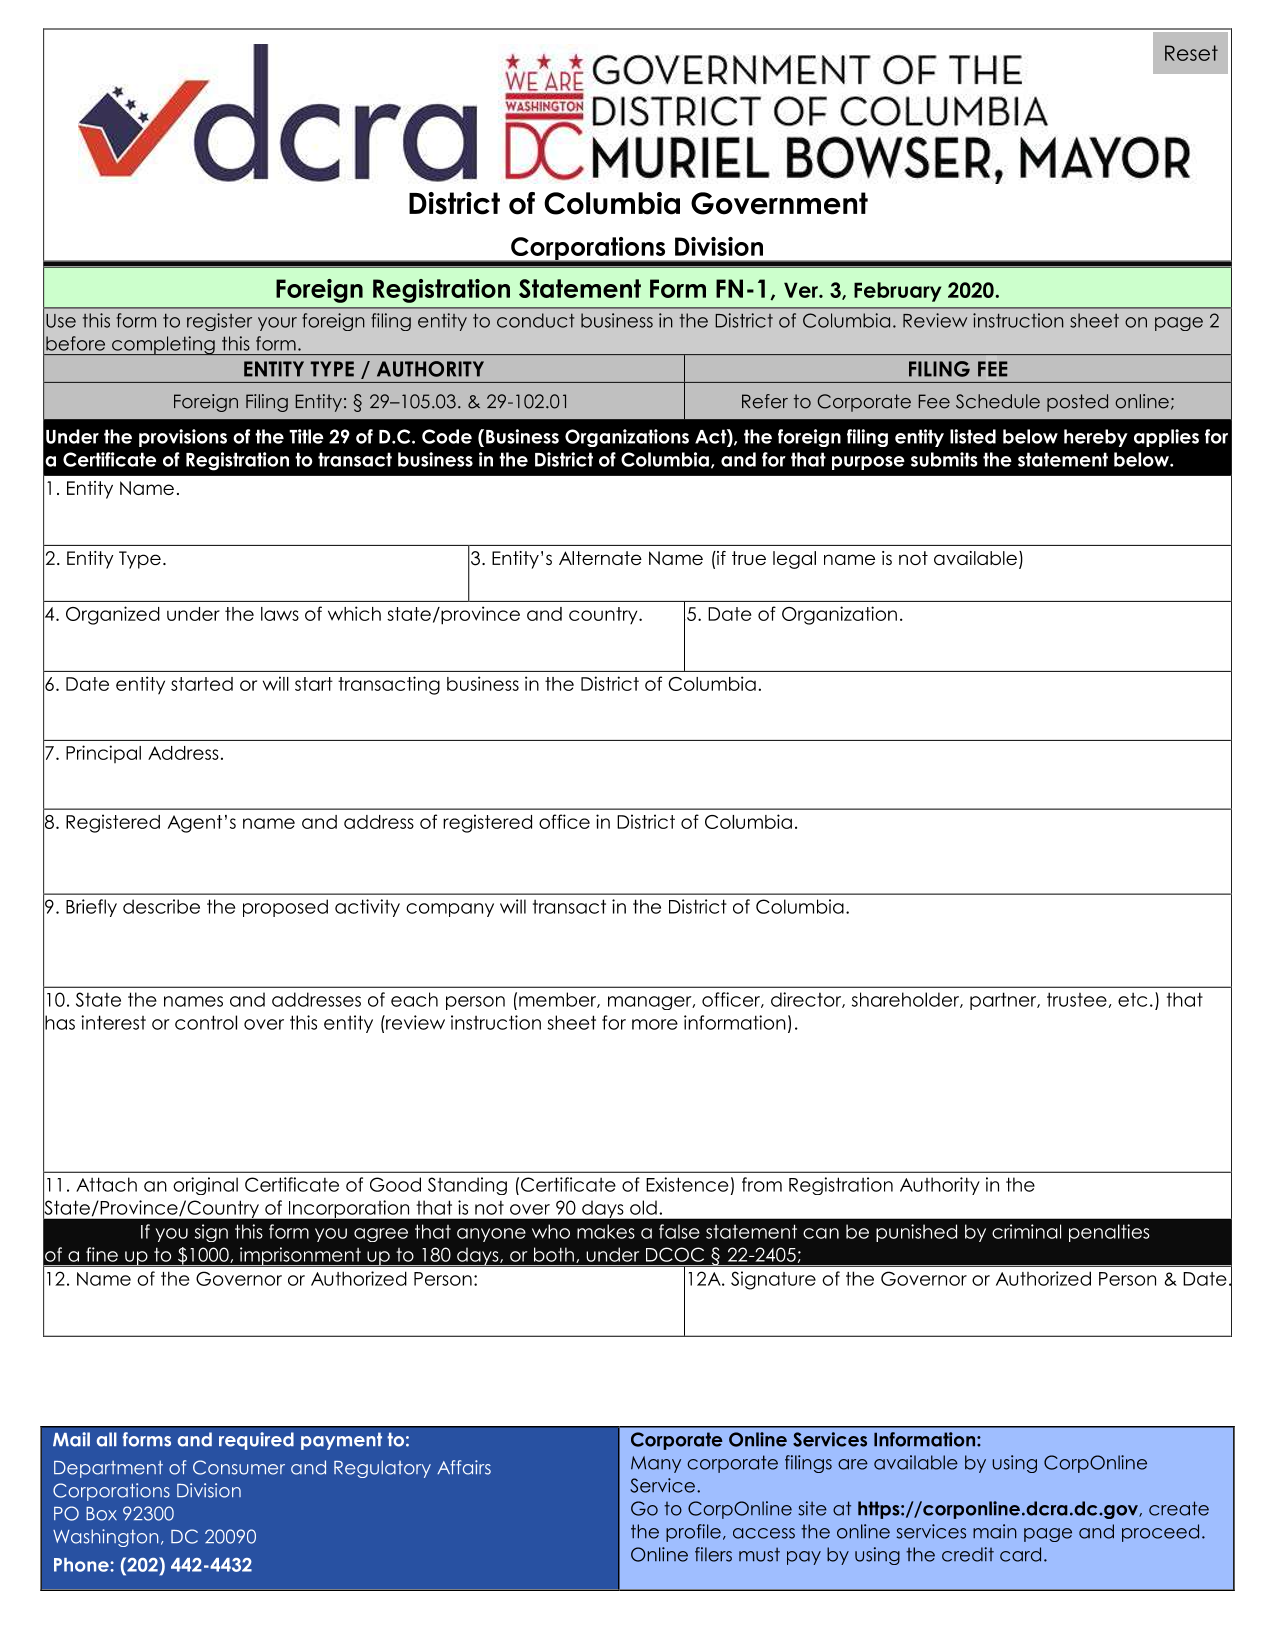 district-of-columbia-foreign-corporation-foreign-registration-statement